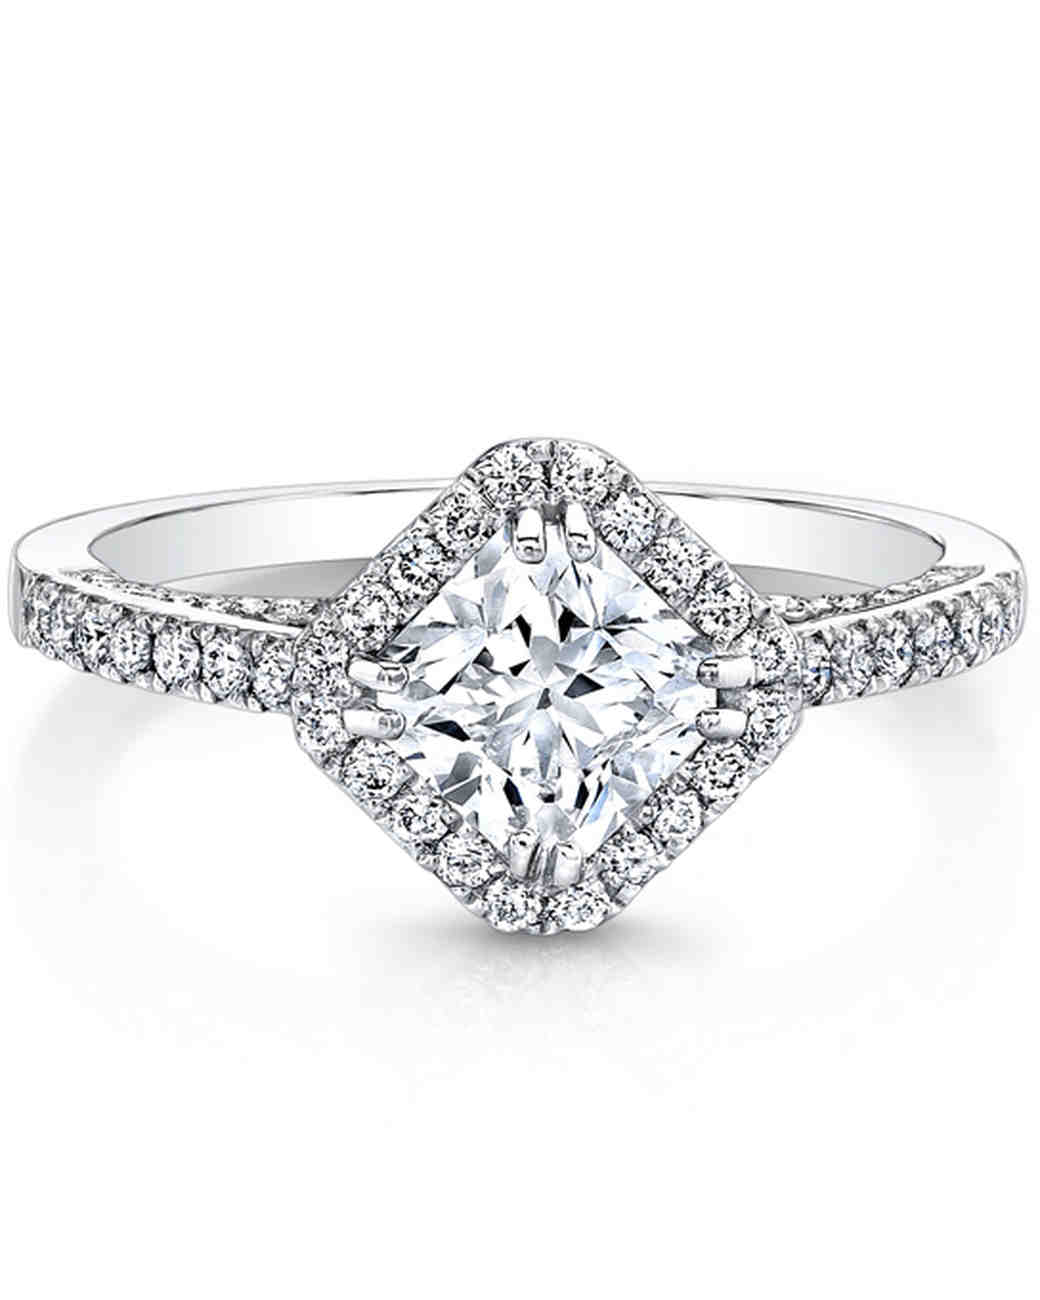 fine extensive natalie jewelers whittier carries and rings diamond orange angeles most brand one located collection the pin coby ca los in k engagement of a is distinguished madison county designer jewelry